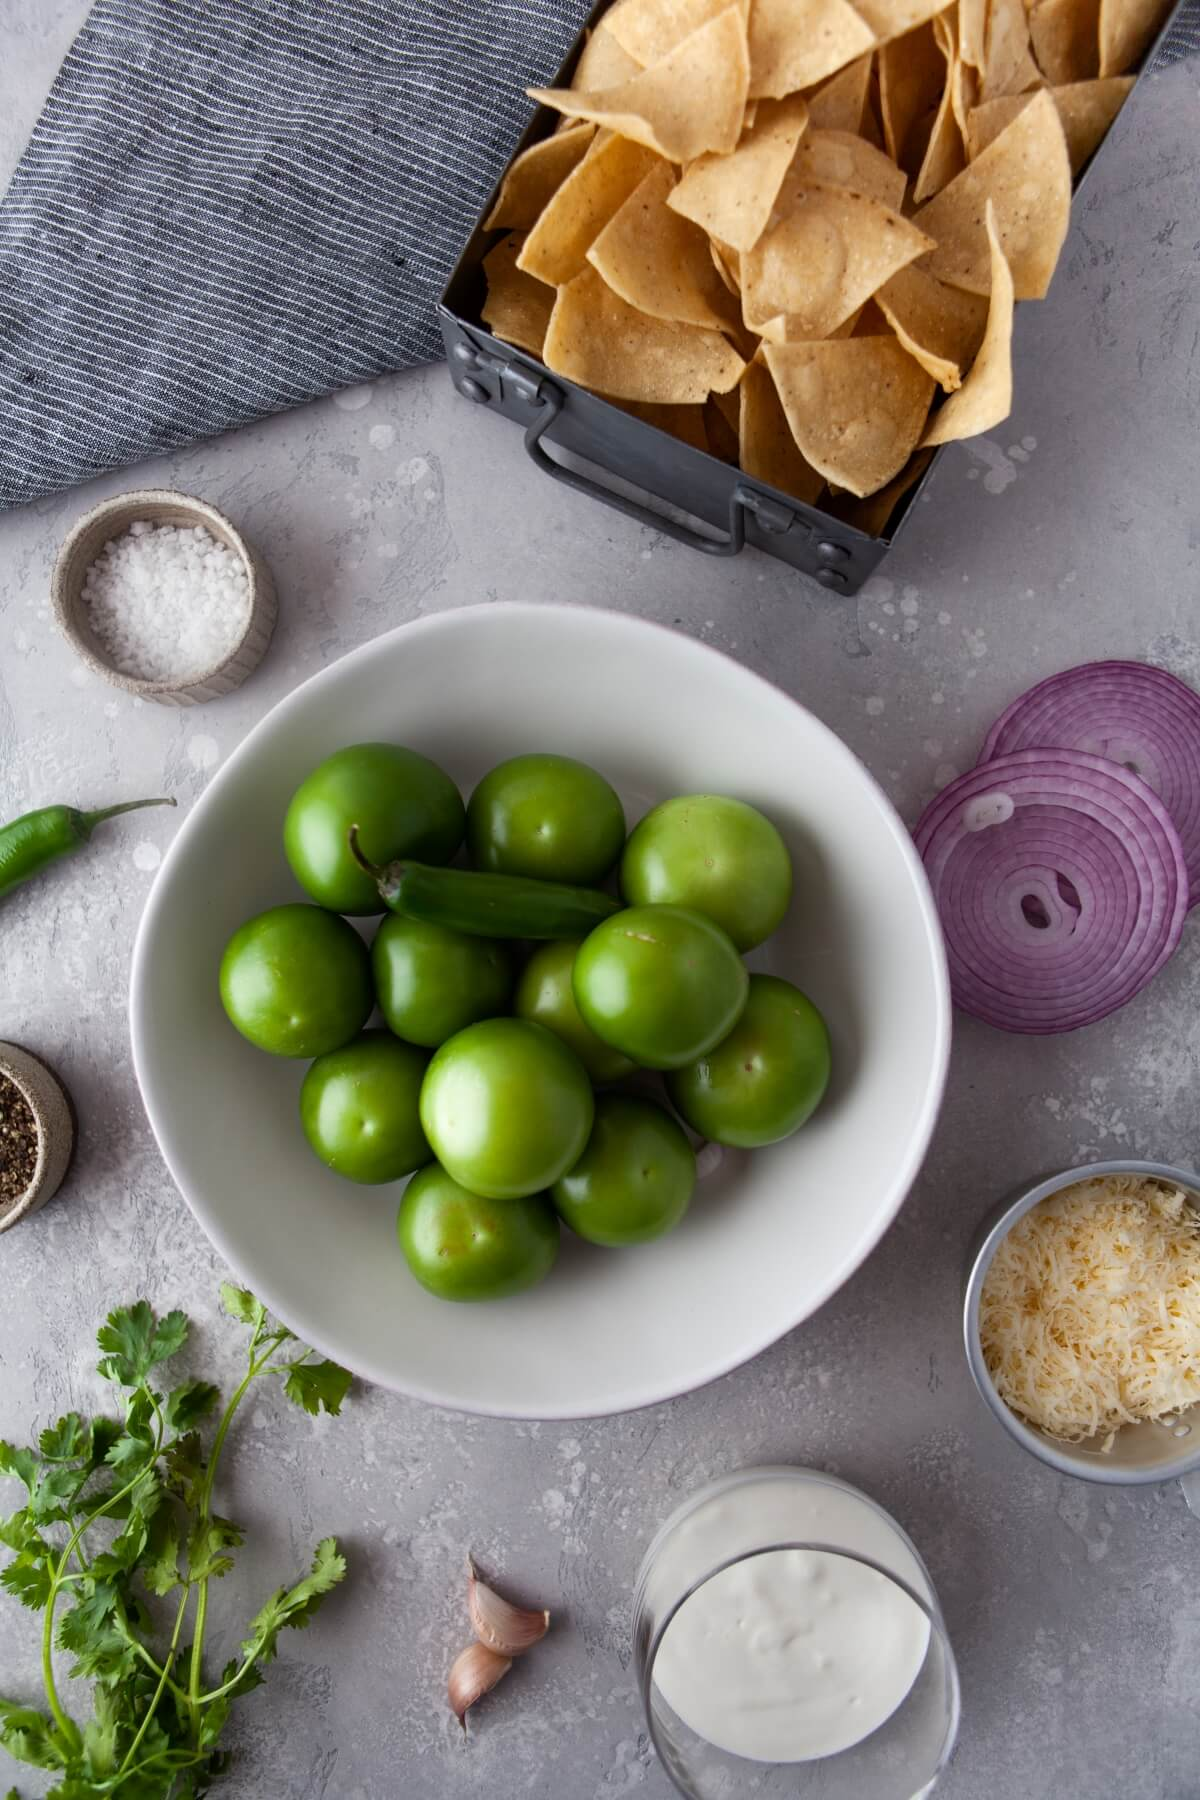 Ingredients used in making Chilaquiles Verdes, a classic Mexican Breakfast.